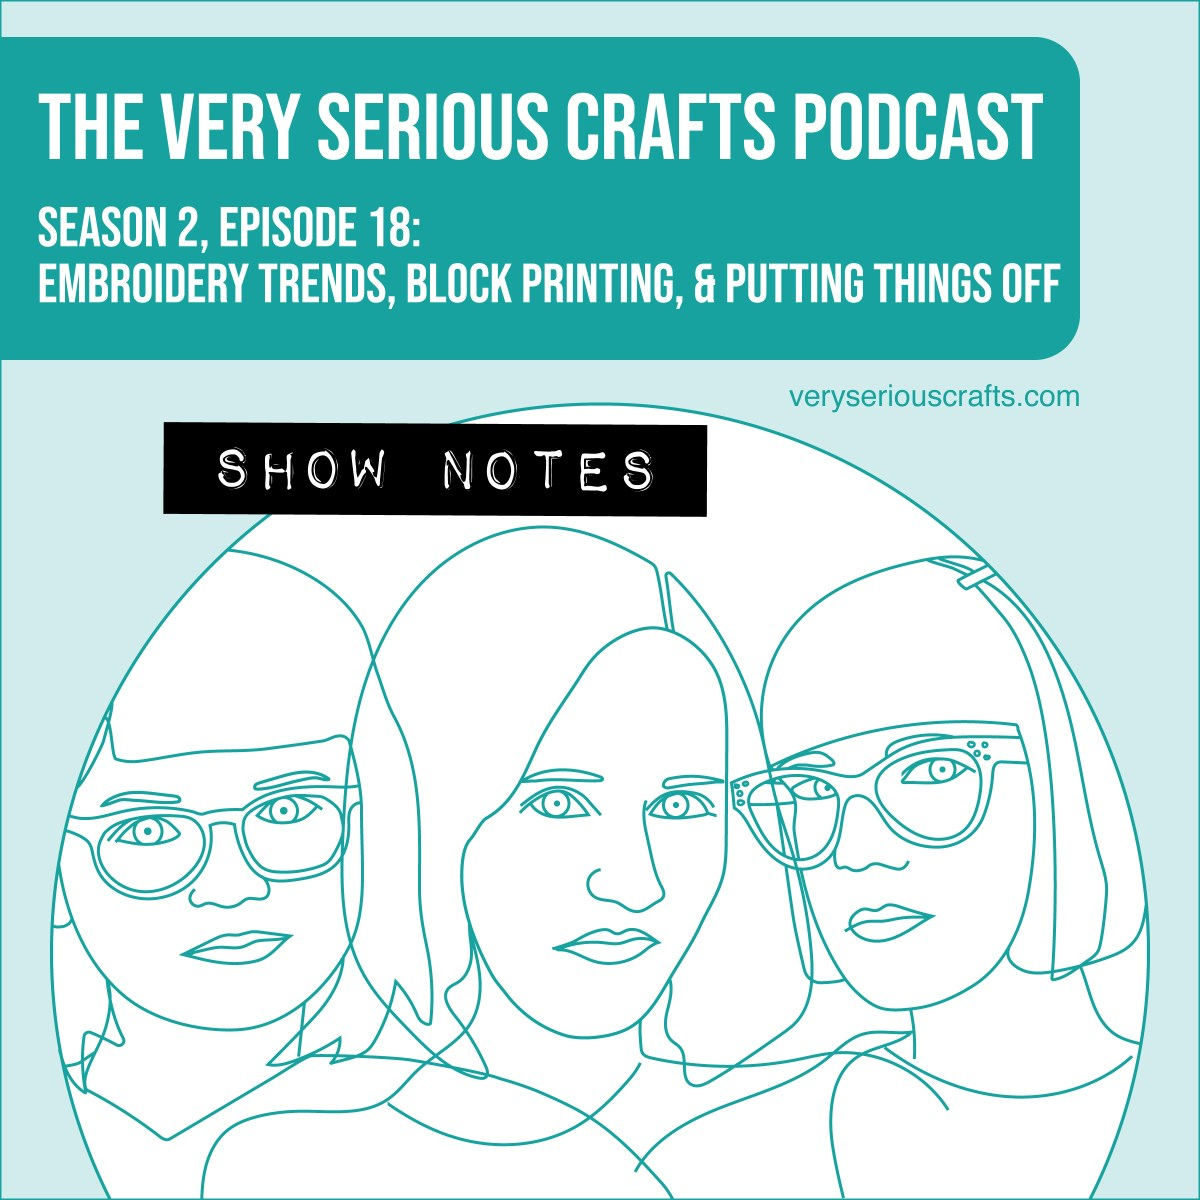 The Very Serious Crafts Podcast, Season 2: Episode 18 – Show Notes